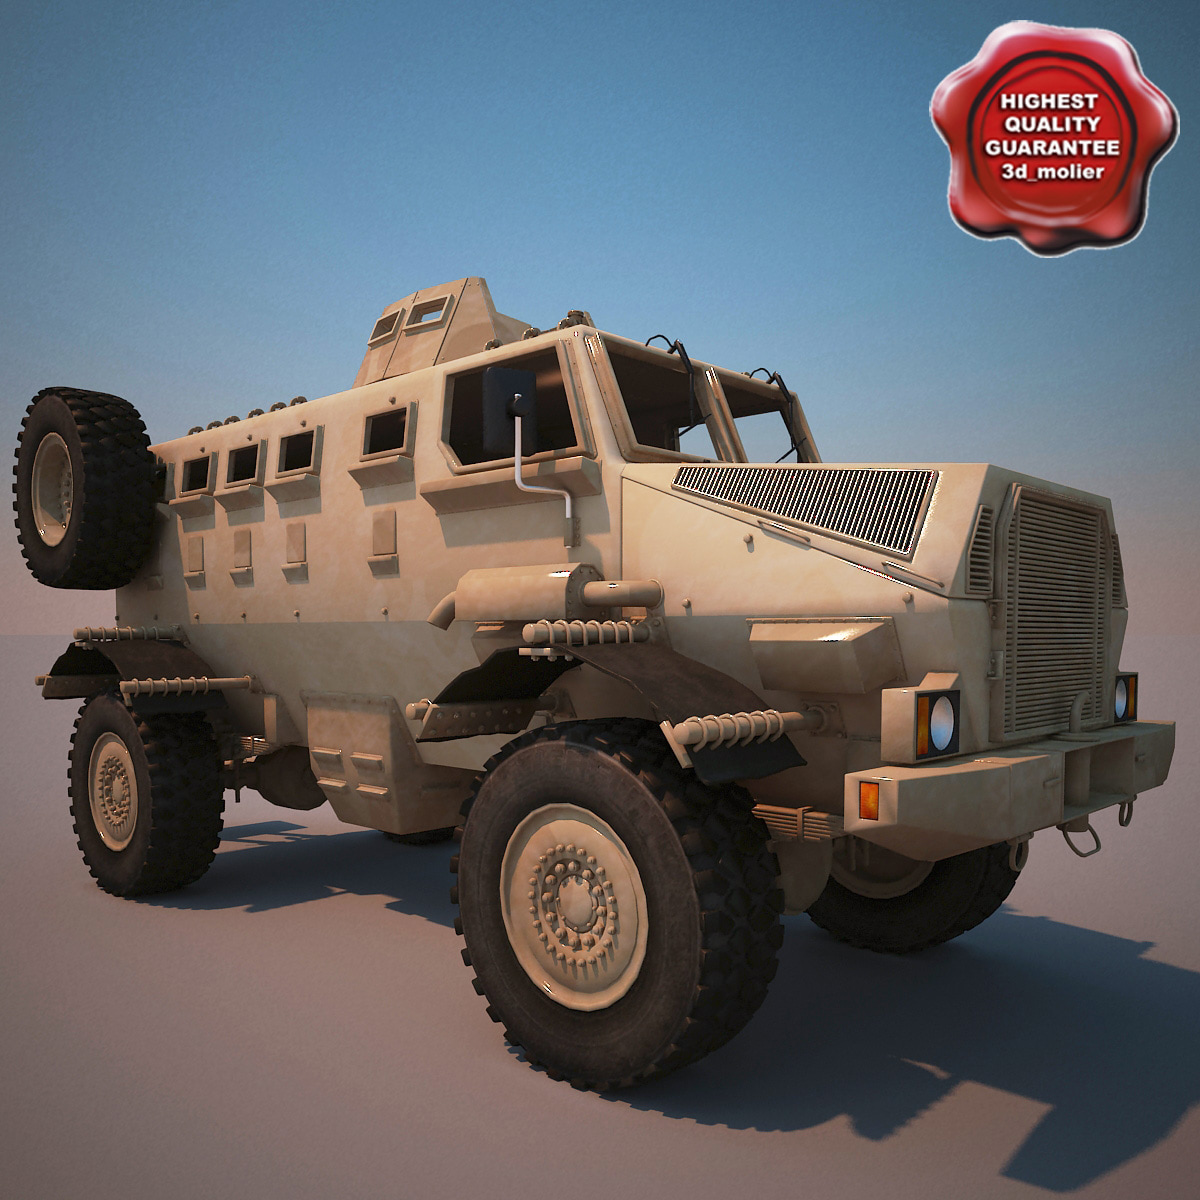 Ivema_Gila_Ambush_Protected_Vehicle_00.jpg